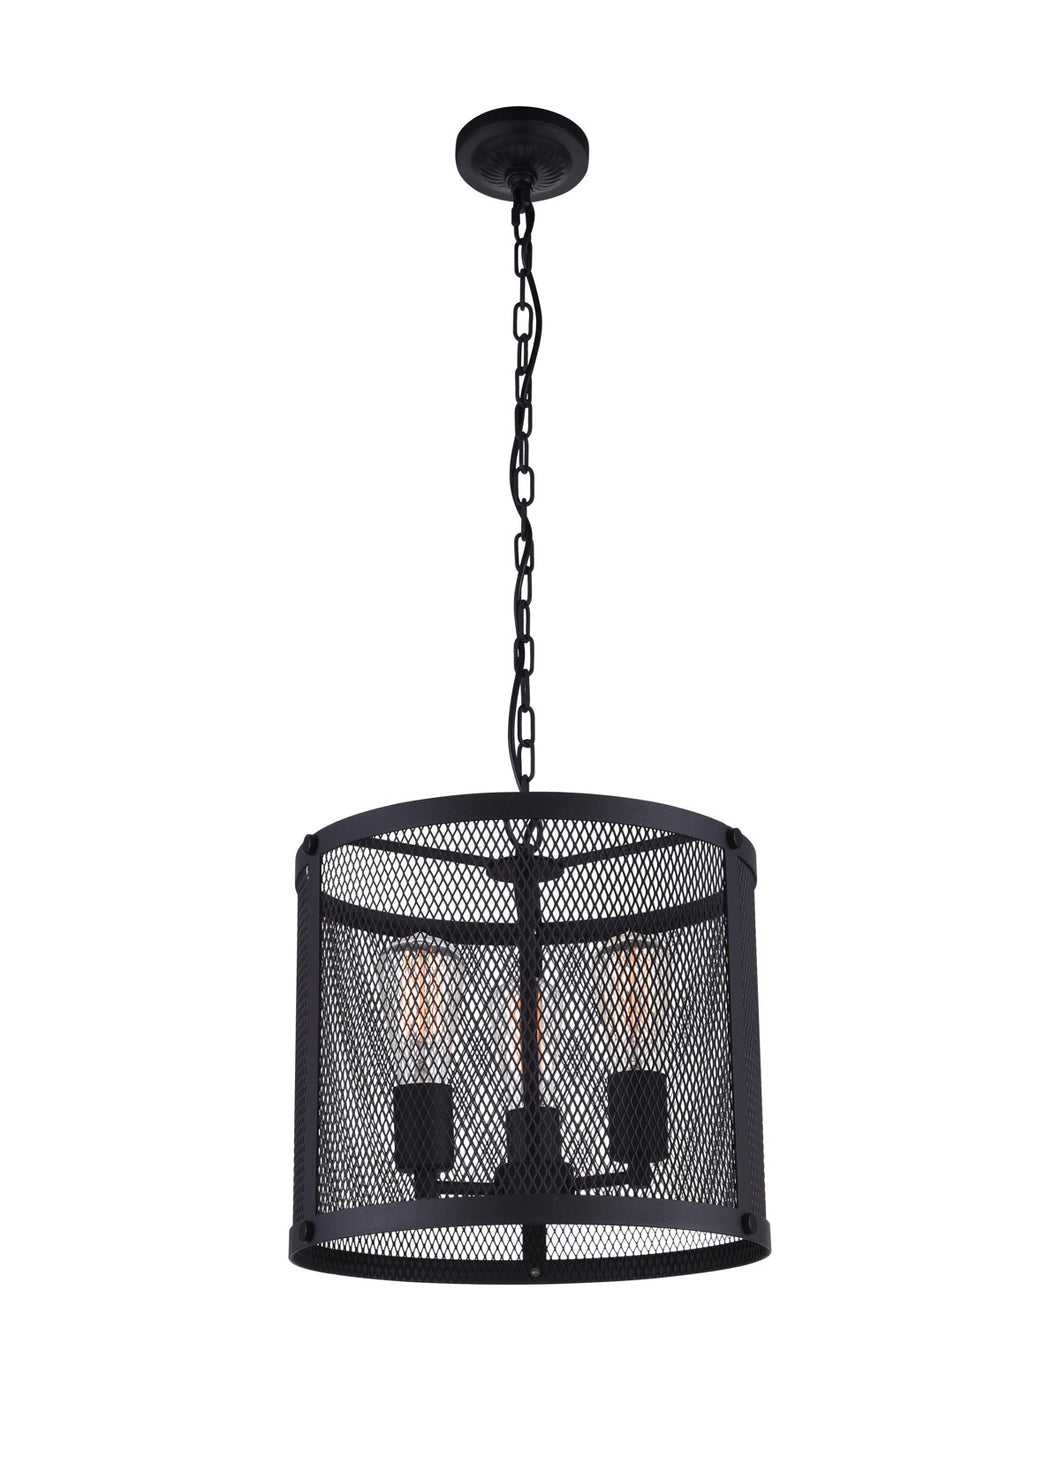 3 Light Drum Shade Pendant with Reddish Black finish